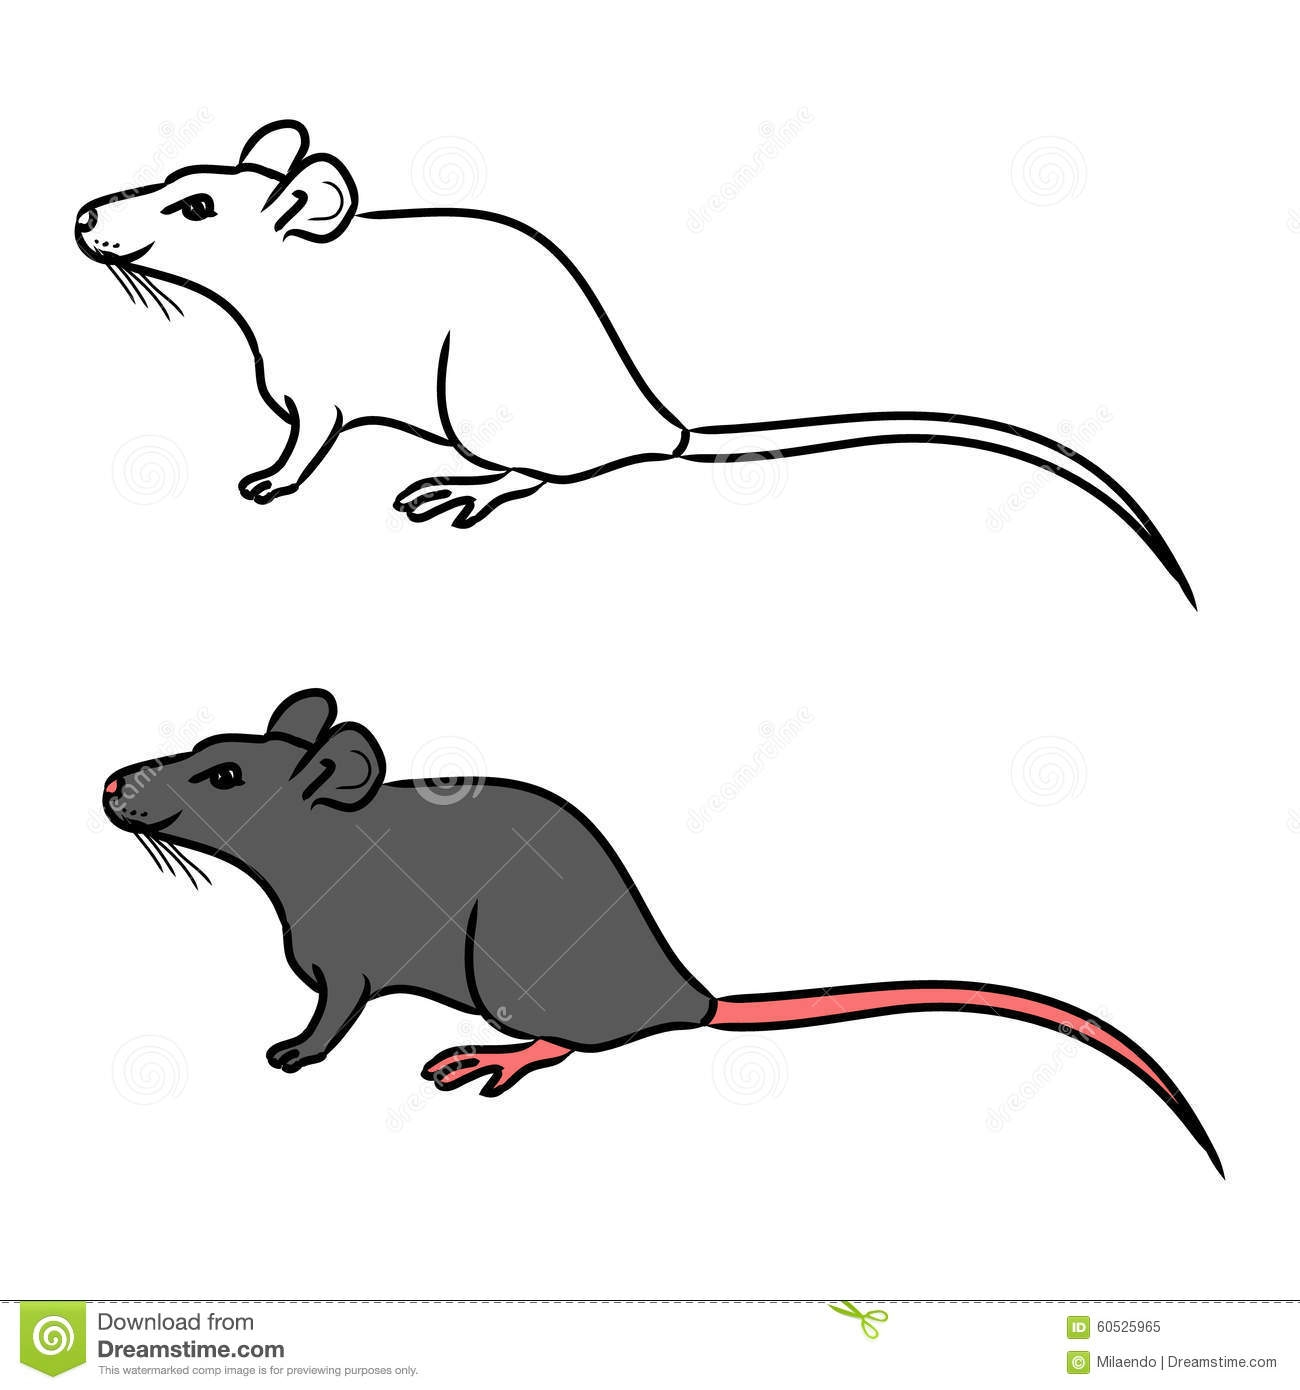 rat coloring pages - rat drawing outline